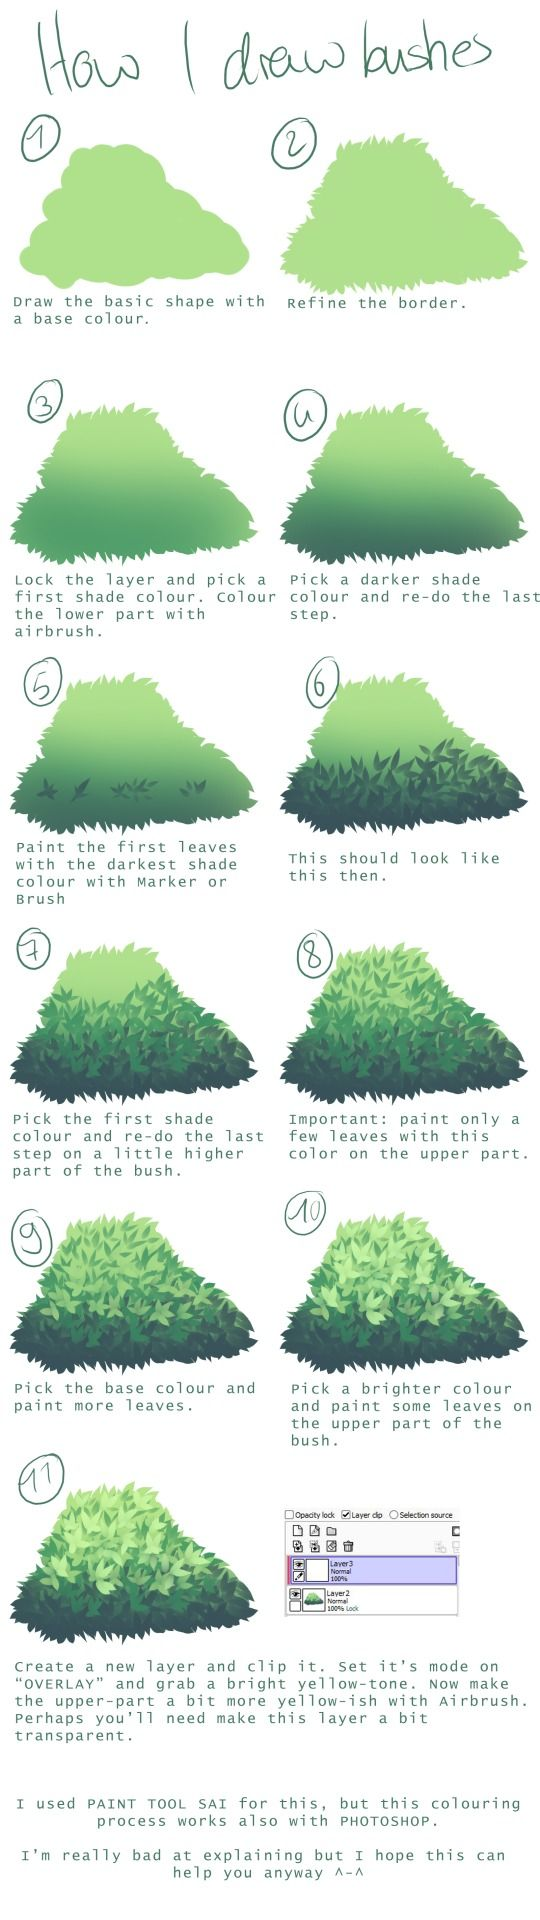 Drawn shrub step by step Use How How I requested